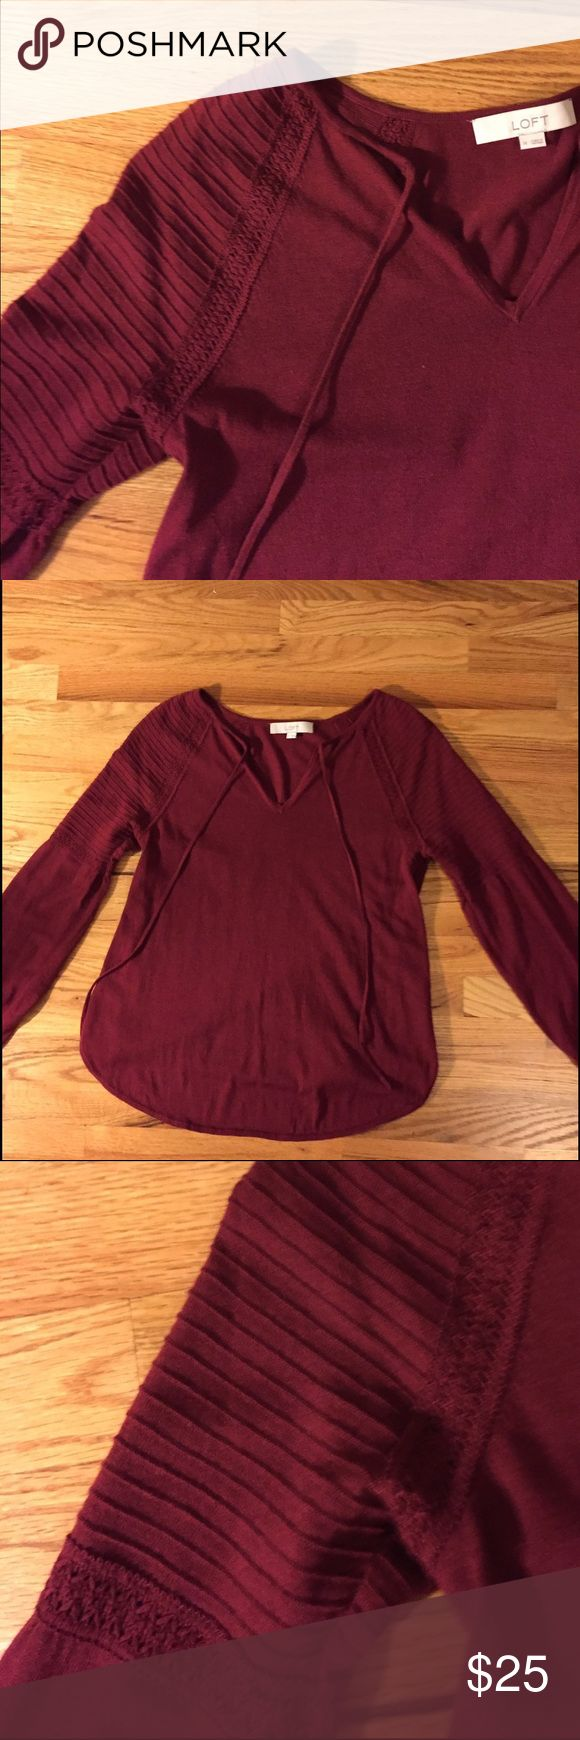 Loft Lantern Sleeve Sweater Light weight lantern sleeve sweater from the Loft in rich burgundy color. Great to wear alone or to layer with! Very bohemian feel, but with structure! Bought this fall took the tags off and never wore so it's practically brand new. Sweater is in excellent condition and ready for a new closet 😊 LOFT Sweaters